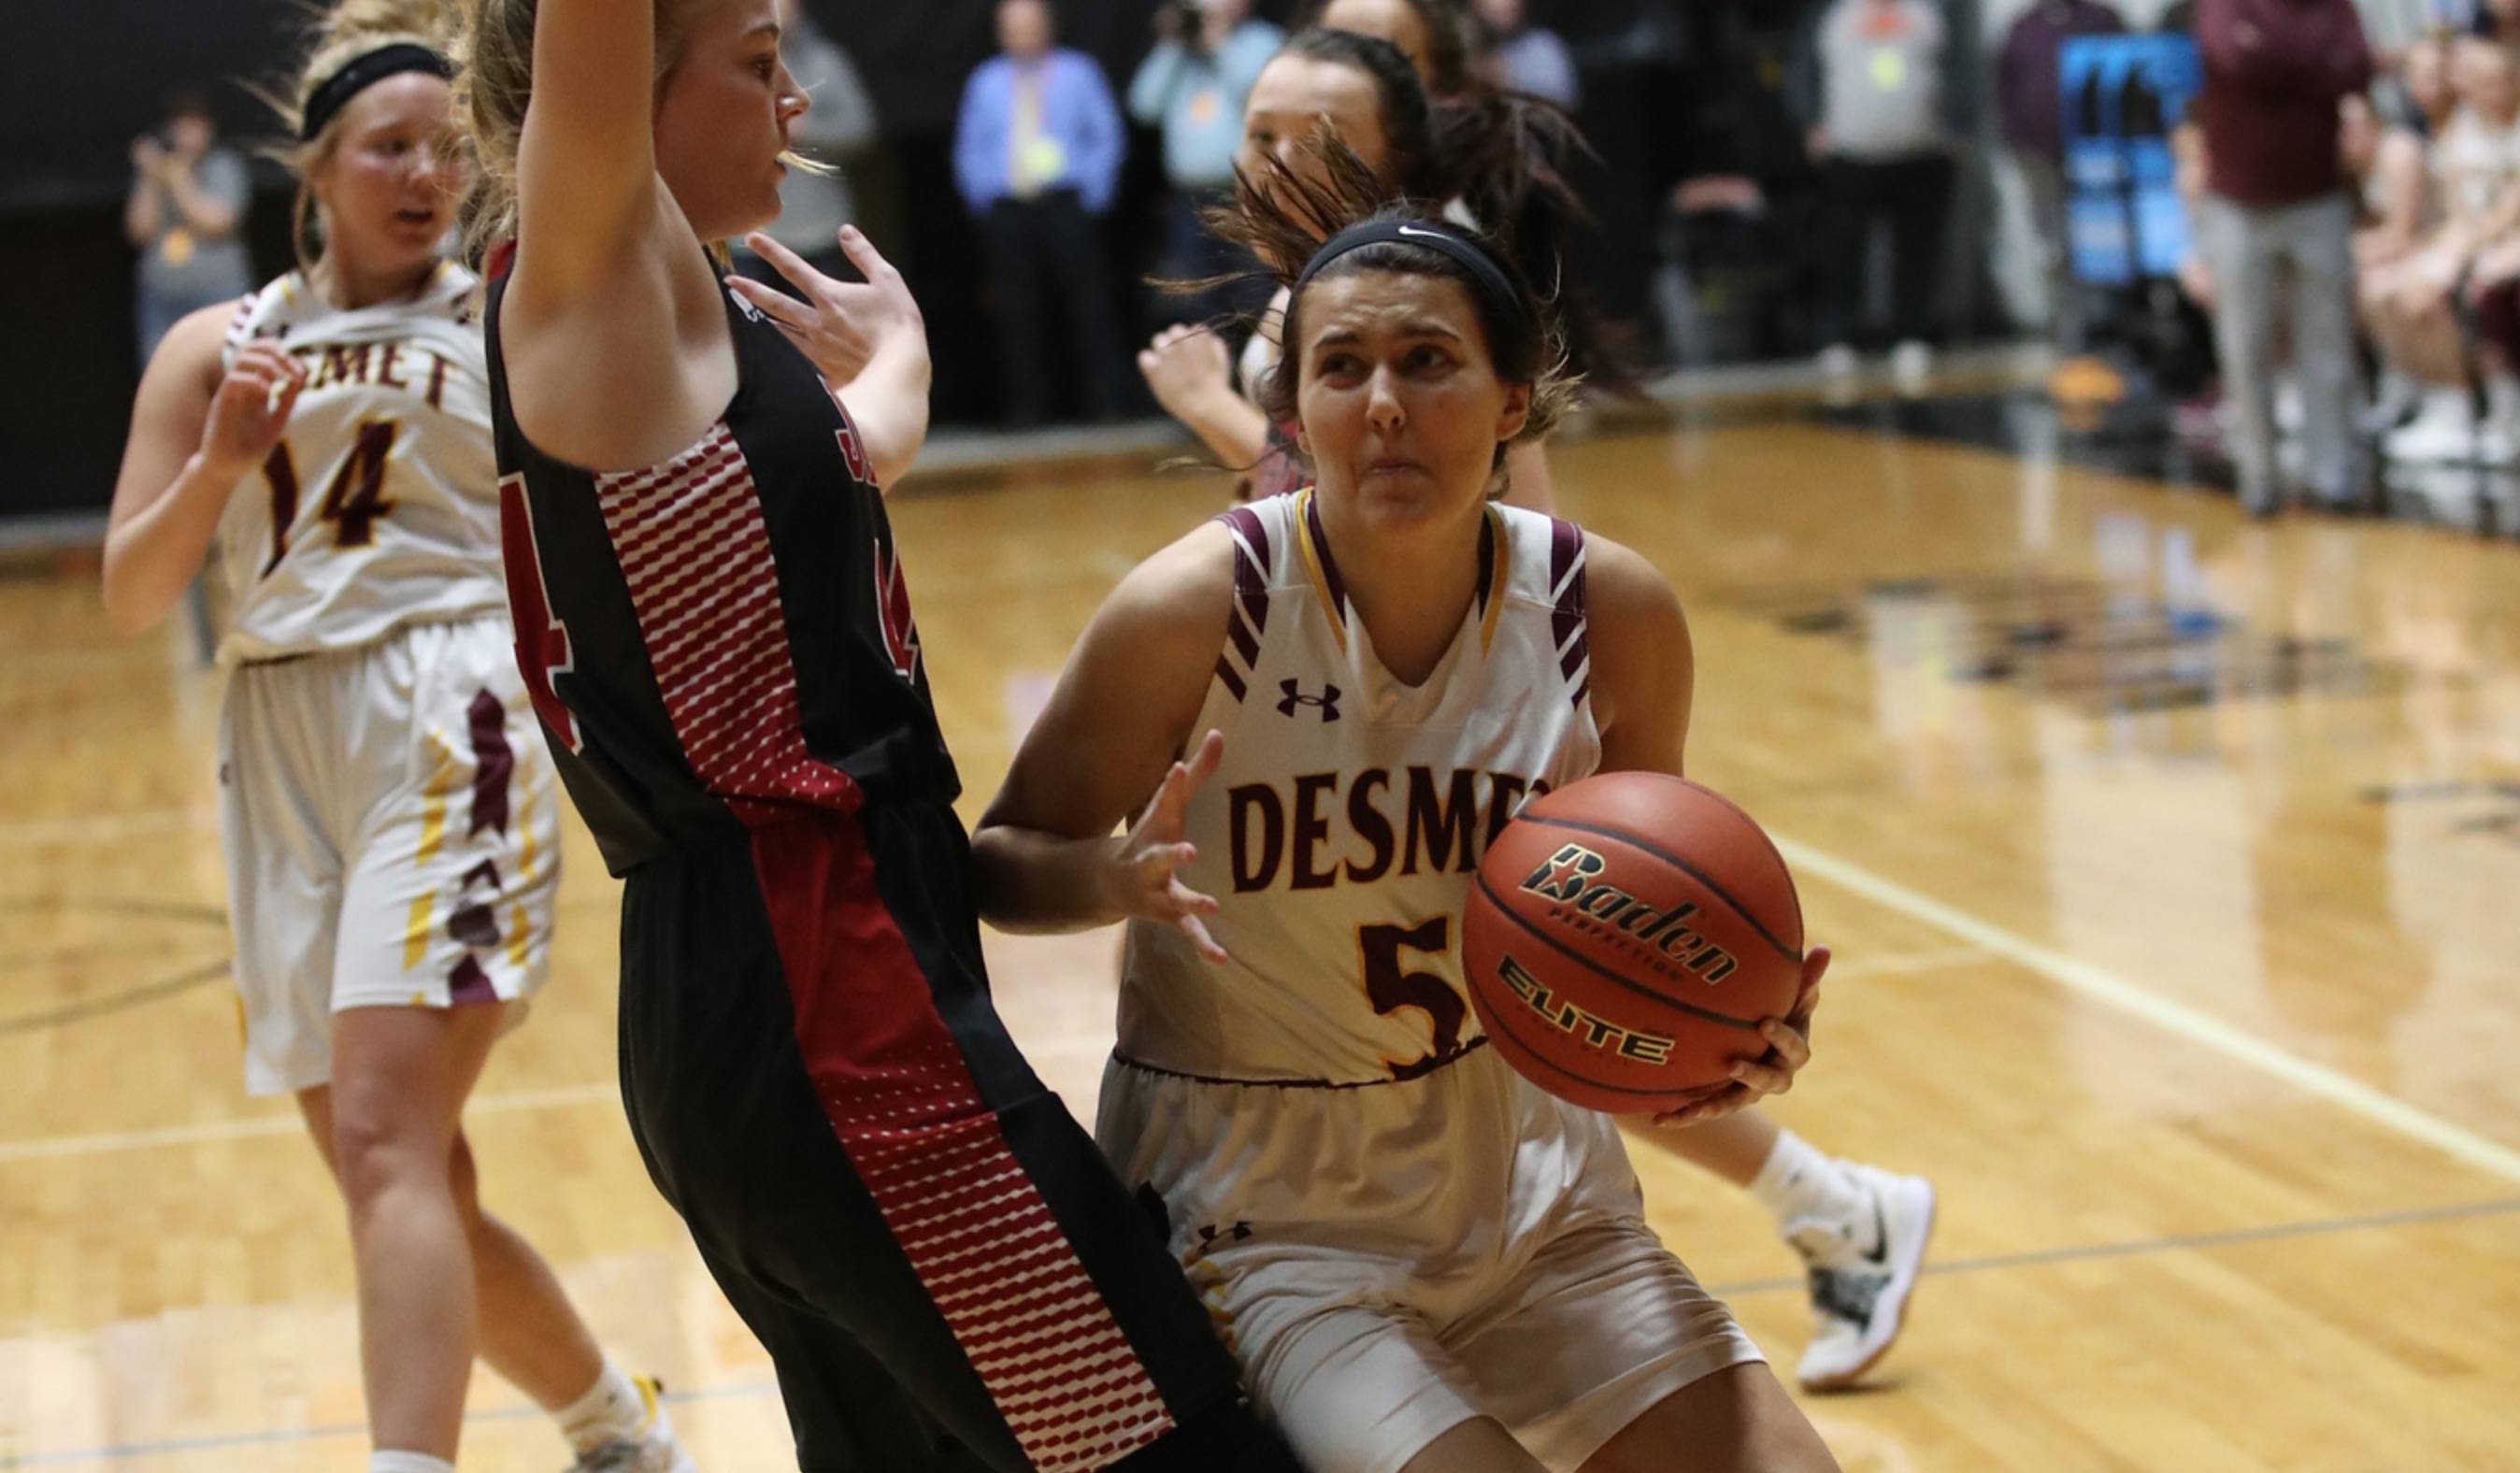 De Smet girls basketball player